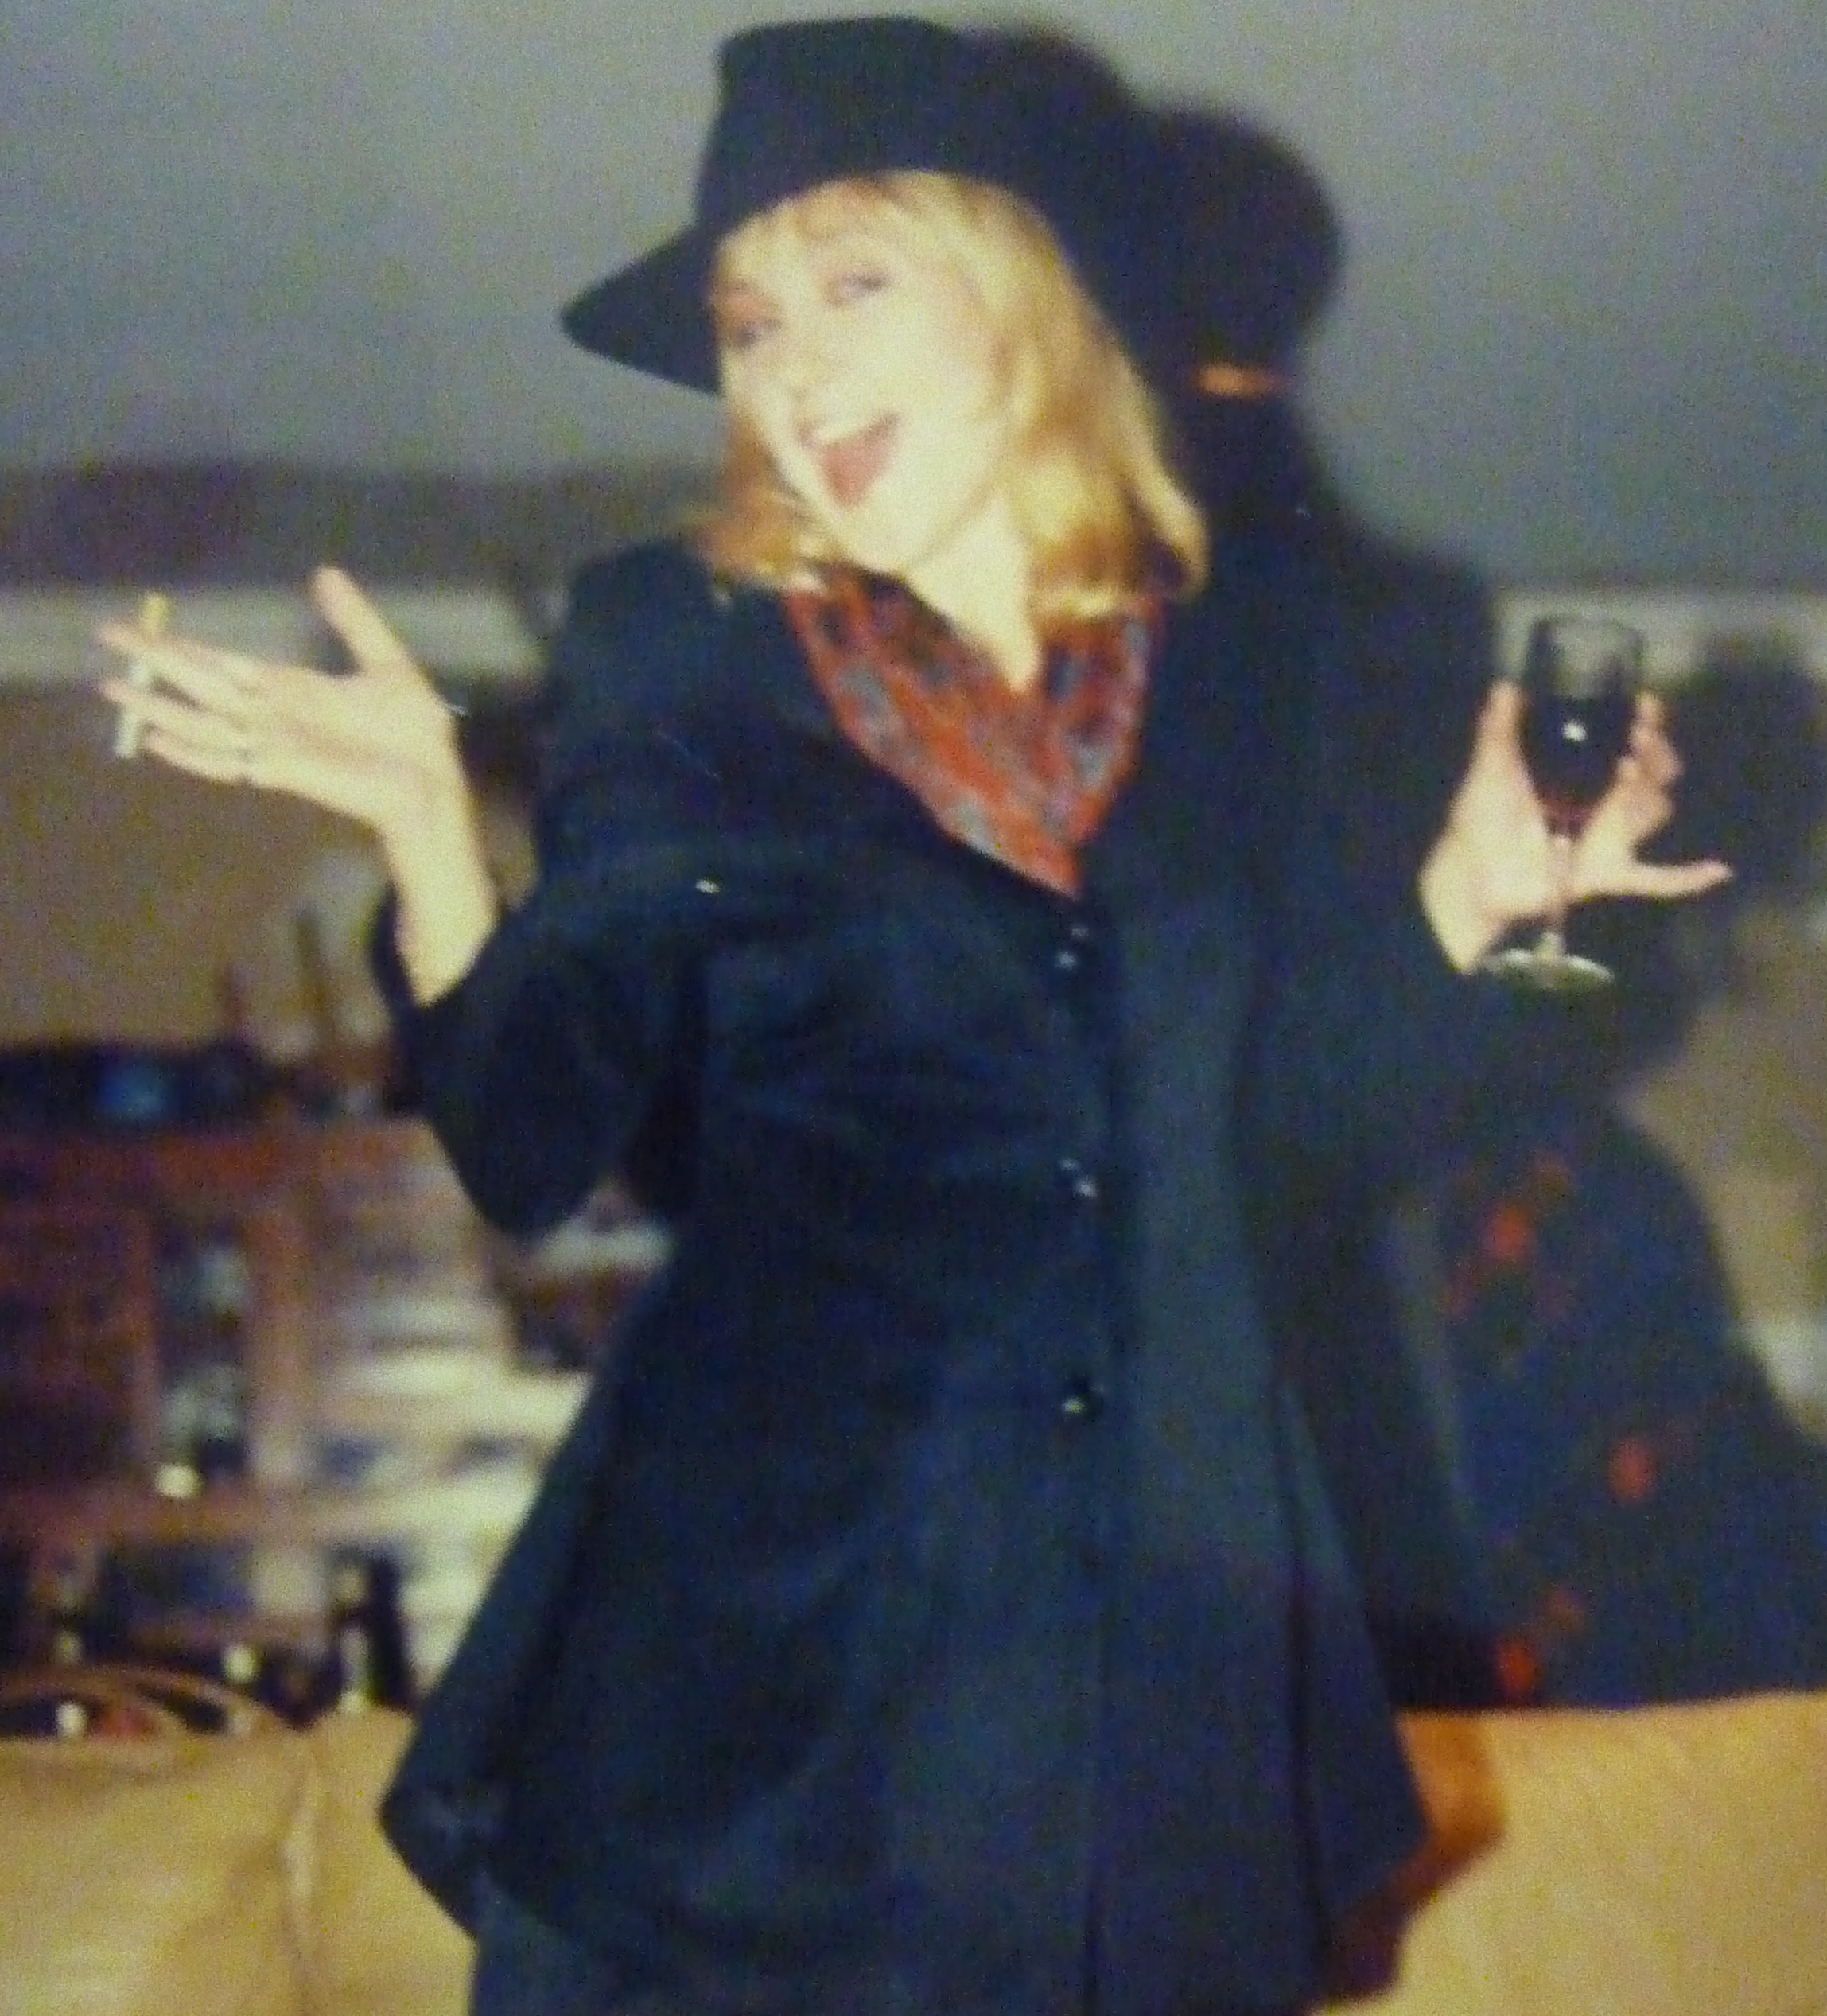 Did I really think that hat worked? And the cigarette?